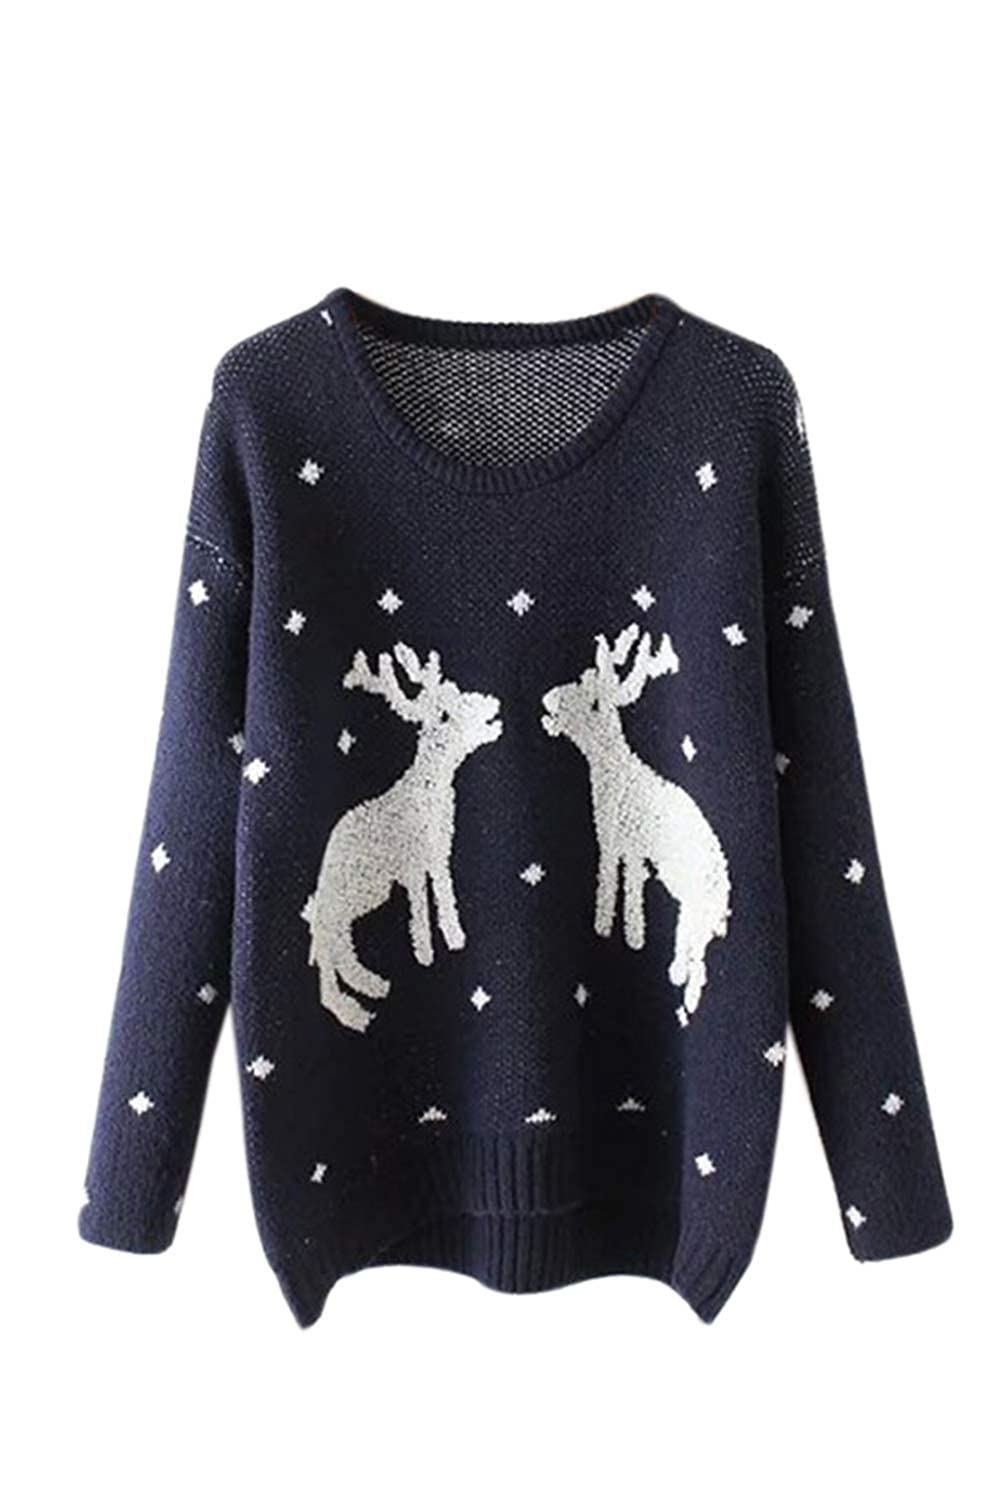 Simgahuva Women Ugly Christmas Sweater Reindeer Long Sleeve Knitted Pullover CASmWM1078-Darkgray-F